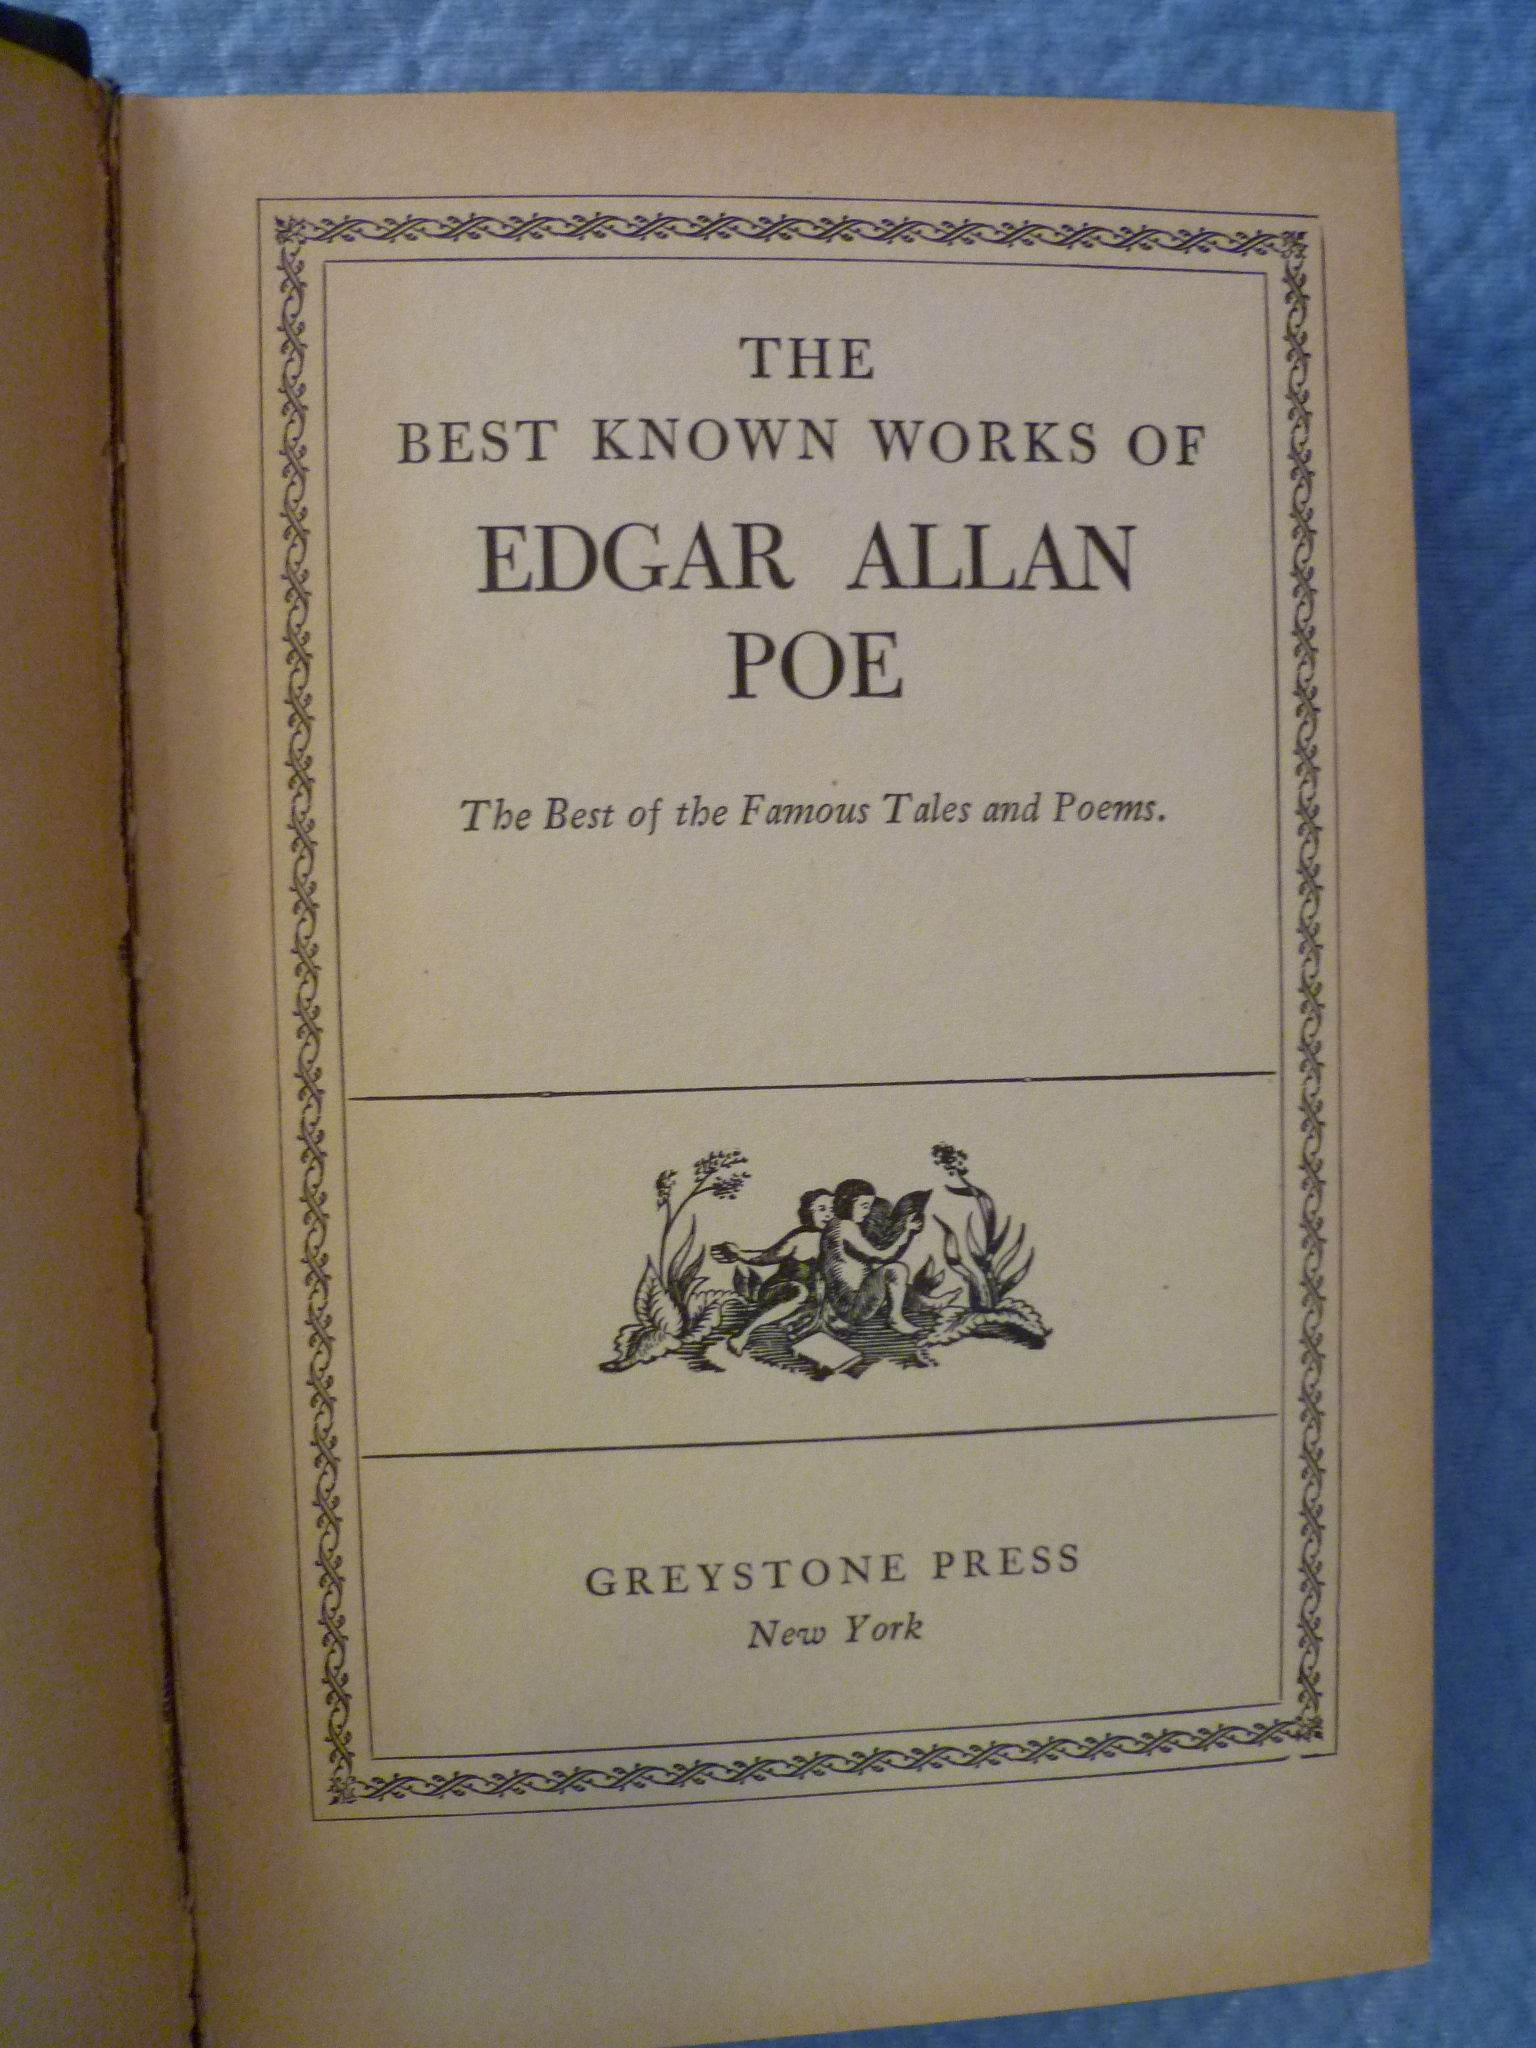 the major struggles of edgar allan poe Edgar allan poe - essays on poe and papers on poe to help students writing about edgar allan poe.